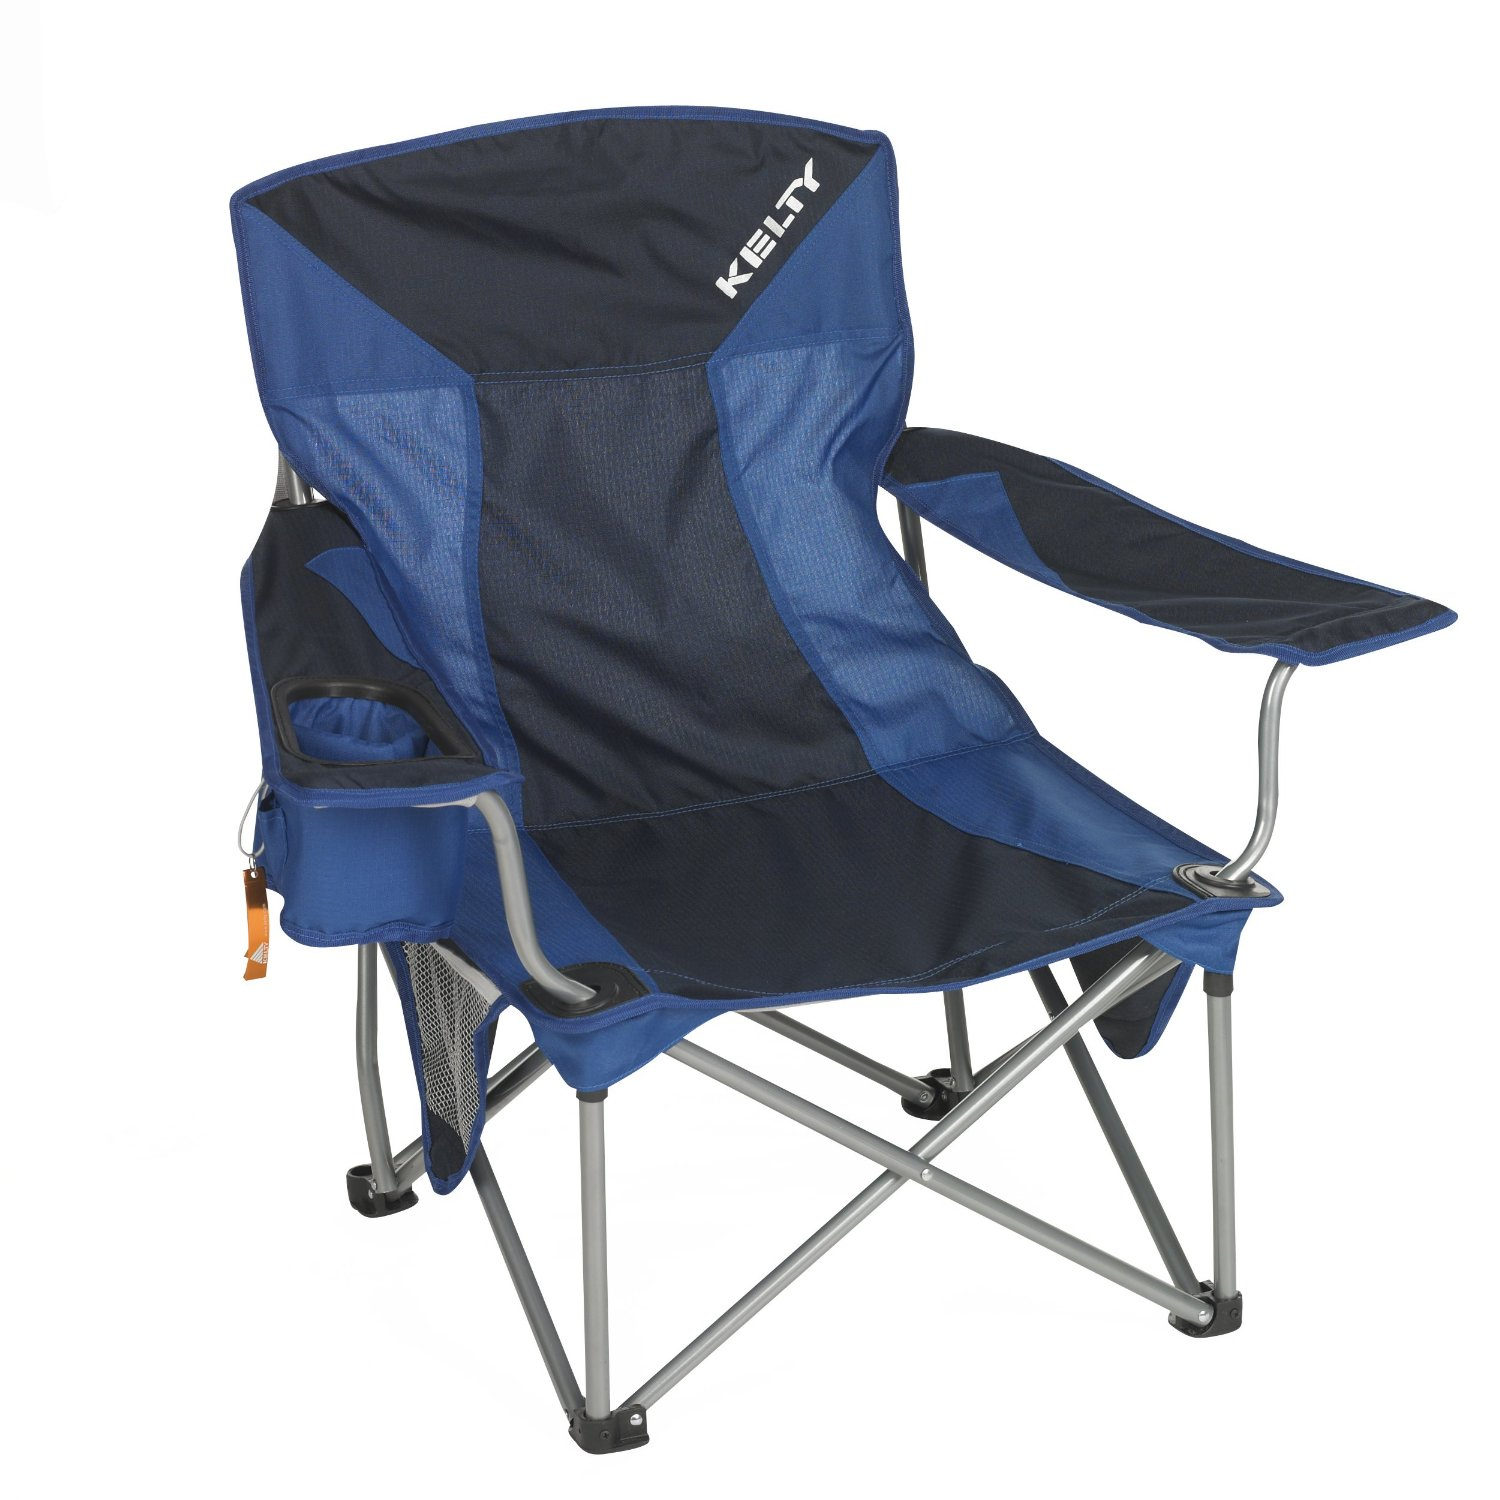 Most Comfortable Camping Chair Best Lawn Chair Reviews Which Of These 7 Lawn Chairs Will You